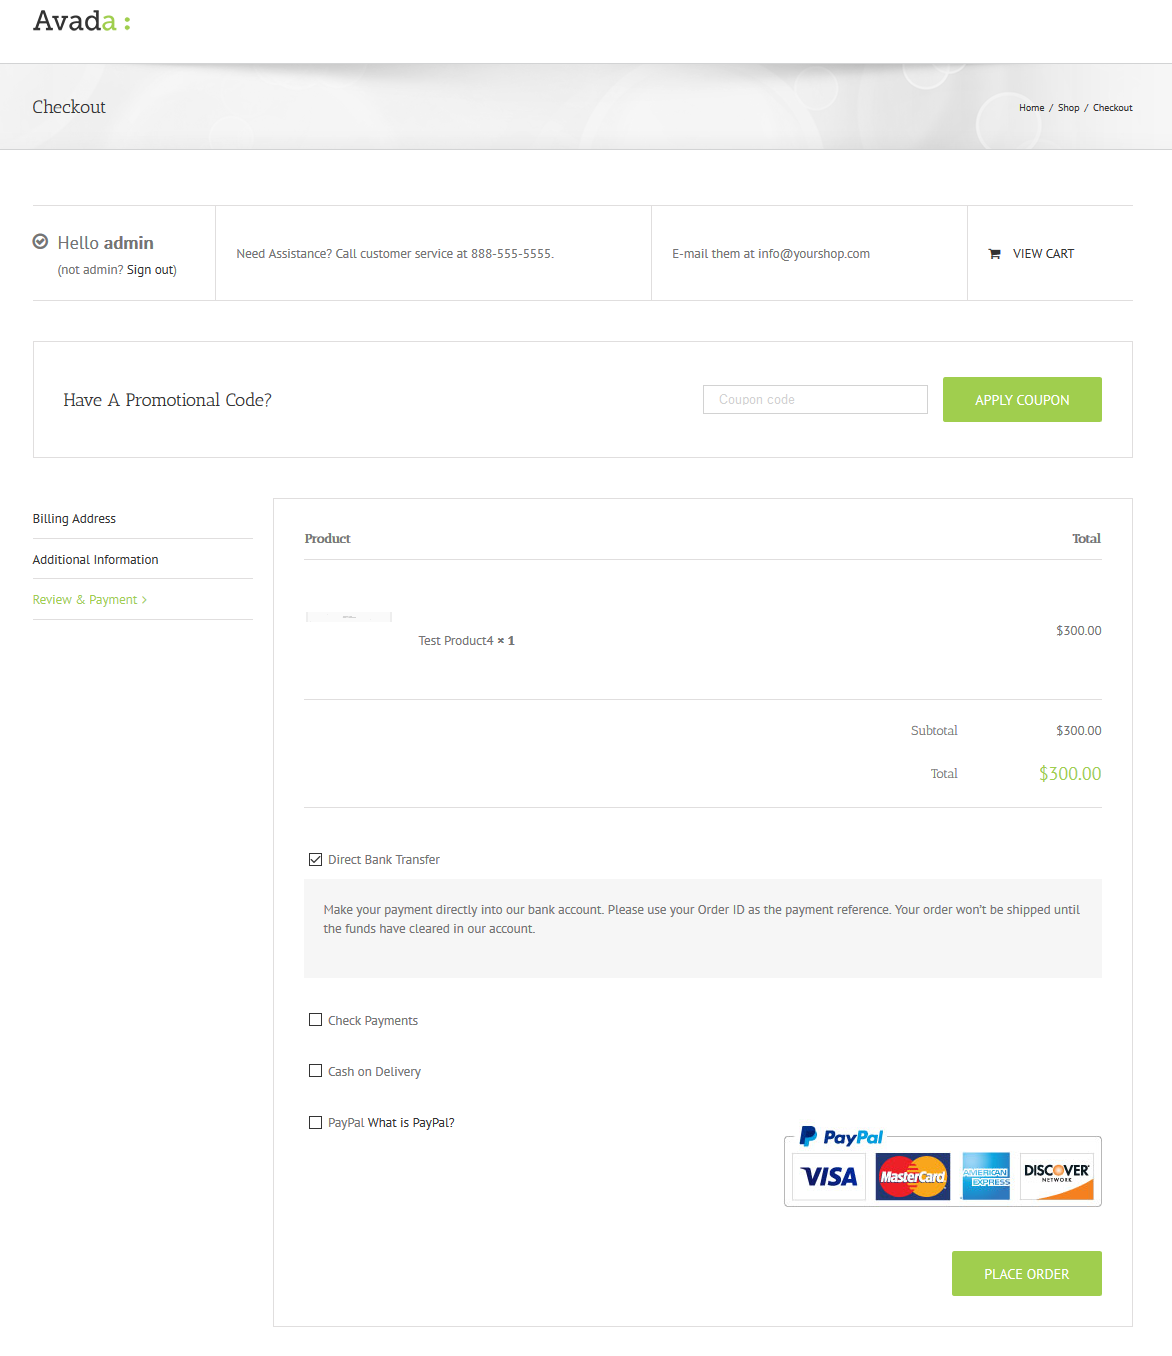 Sumo coupons woocommerce coupon system by fantasticplugins screenshot1010reviewandpaymentemail coupon modeg fandeluxe Gallery